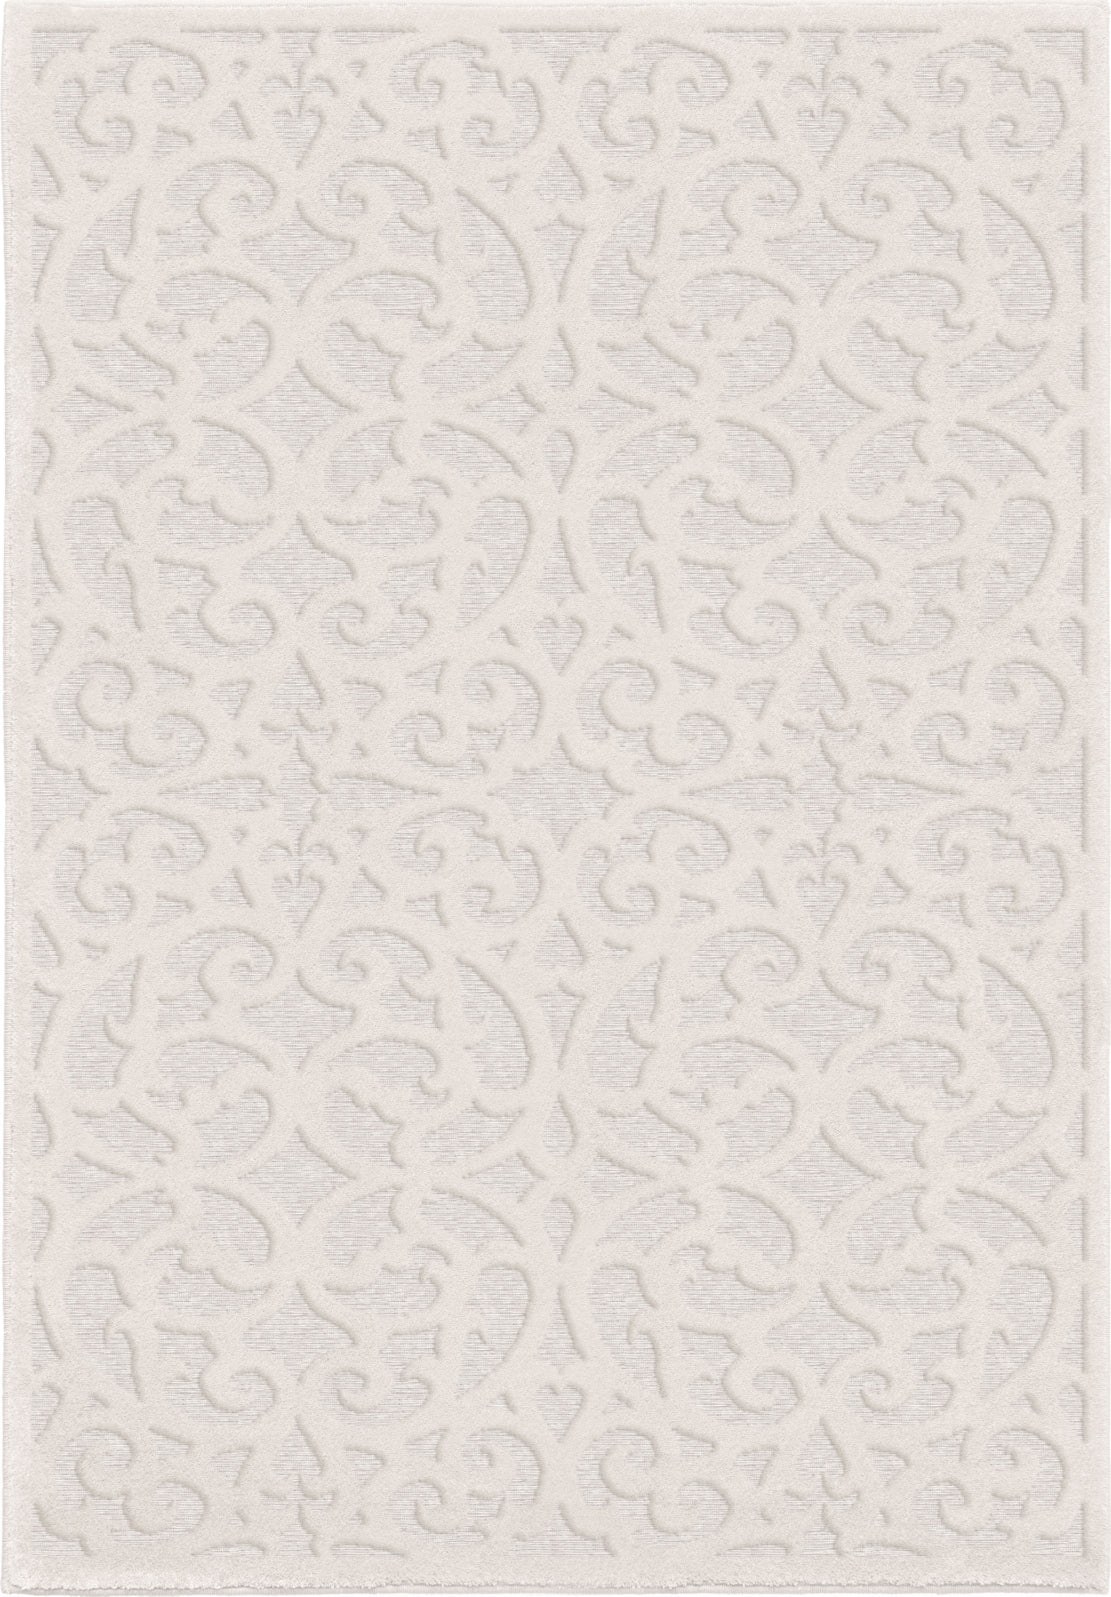 Orian Rugs Boucle' Seaborn Natural Area Rug main image